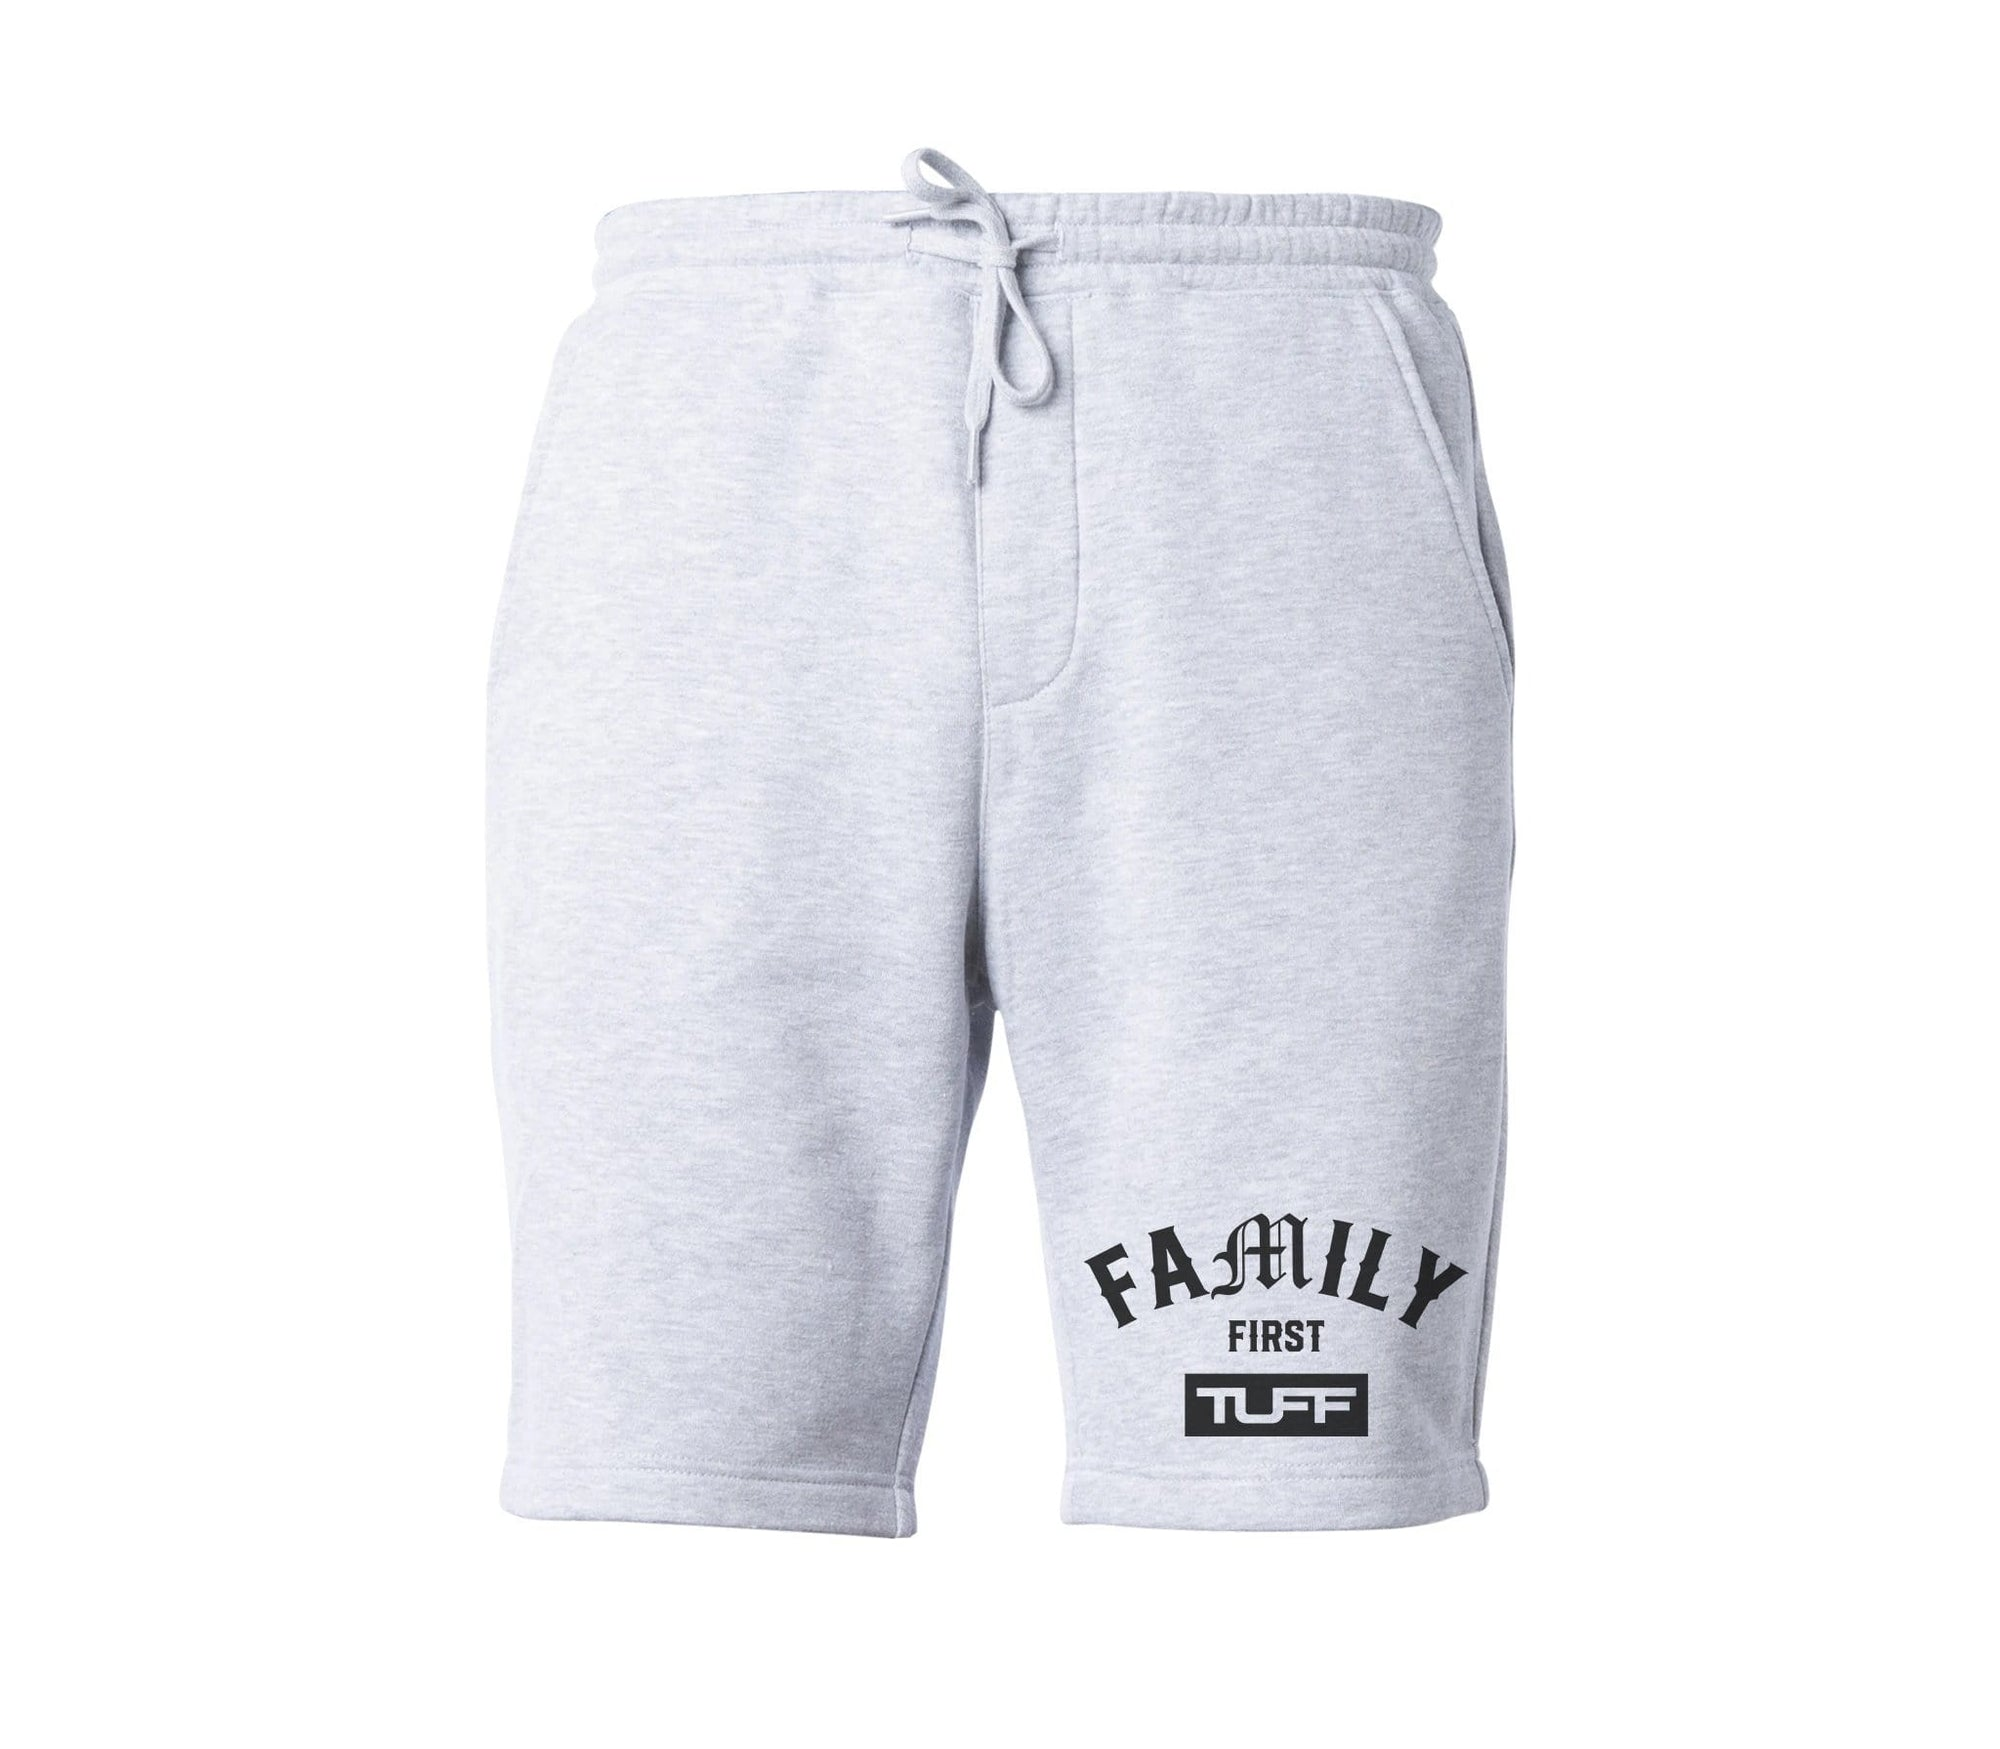 Family First TUFF Tapered Fleece Shorts XS / Gray TuffWraps.com